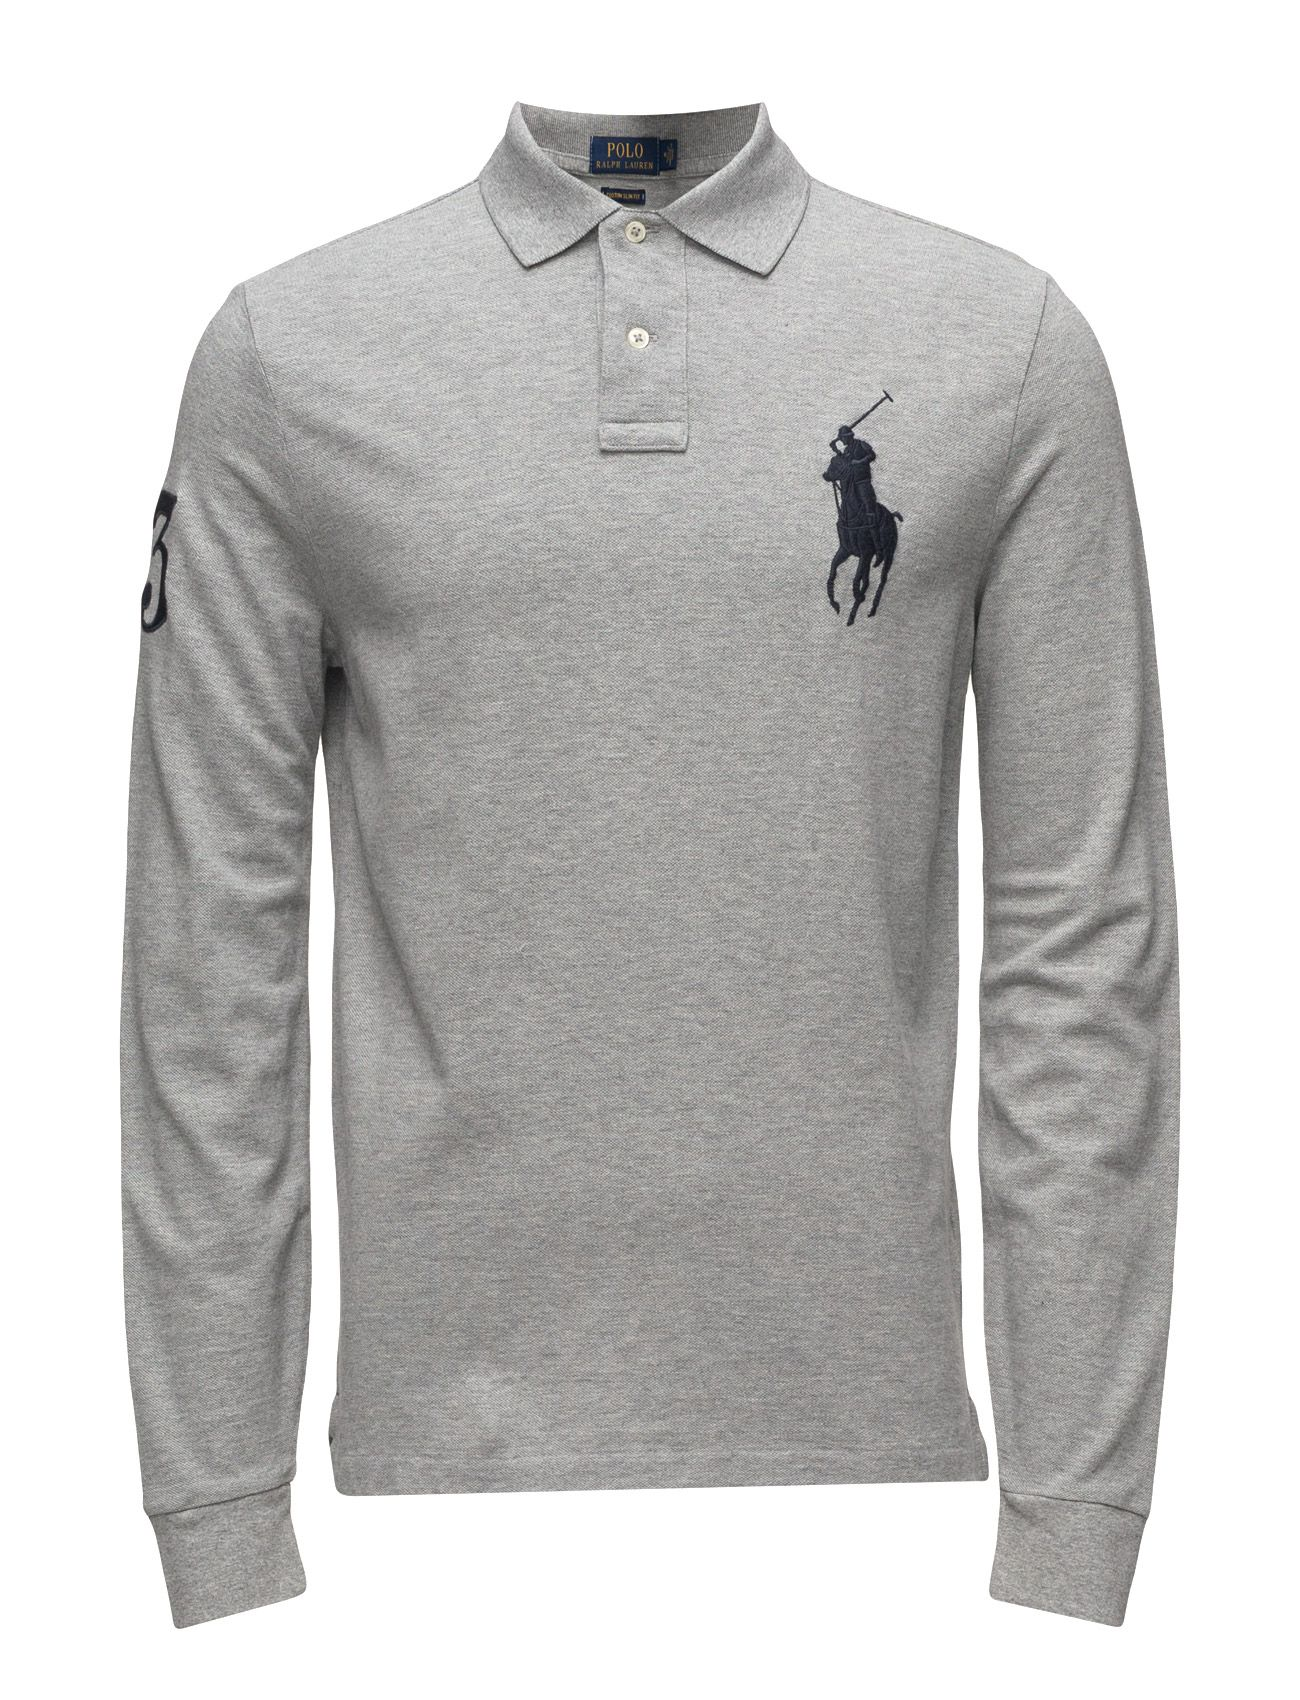 768da25acb72 polo ralph lauren custom slim fit cotton mesh polo andover heather men tops  shirts long-sleeved